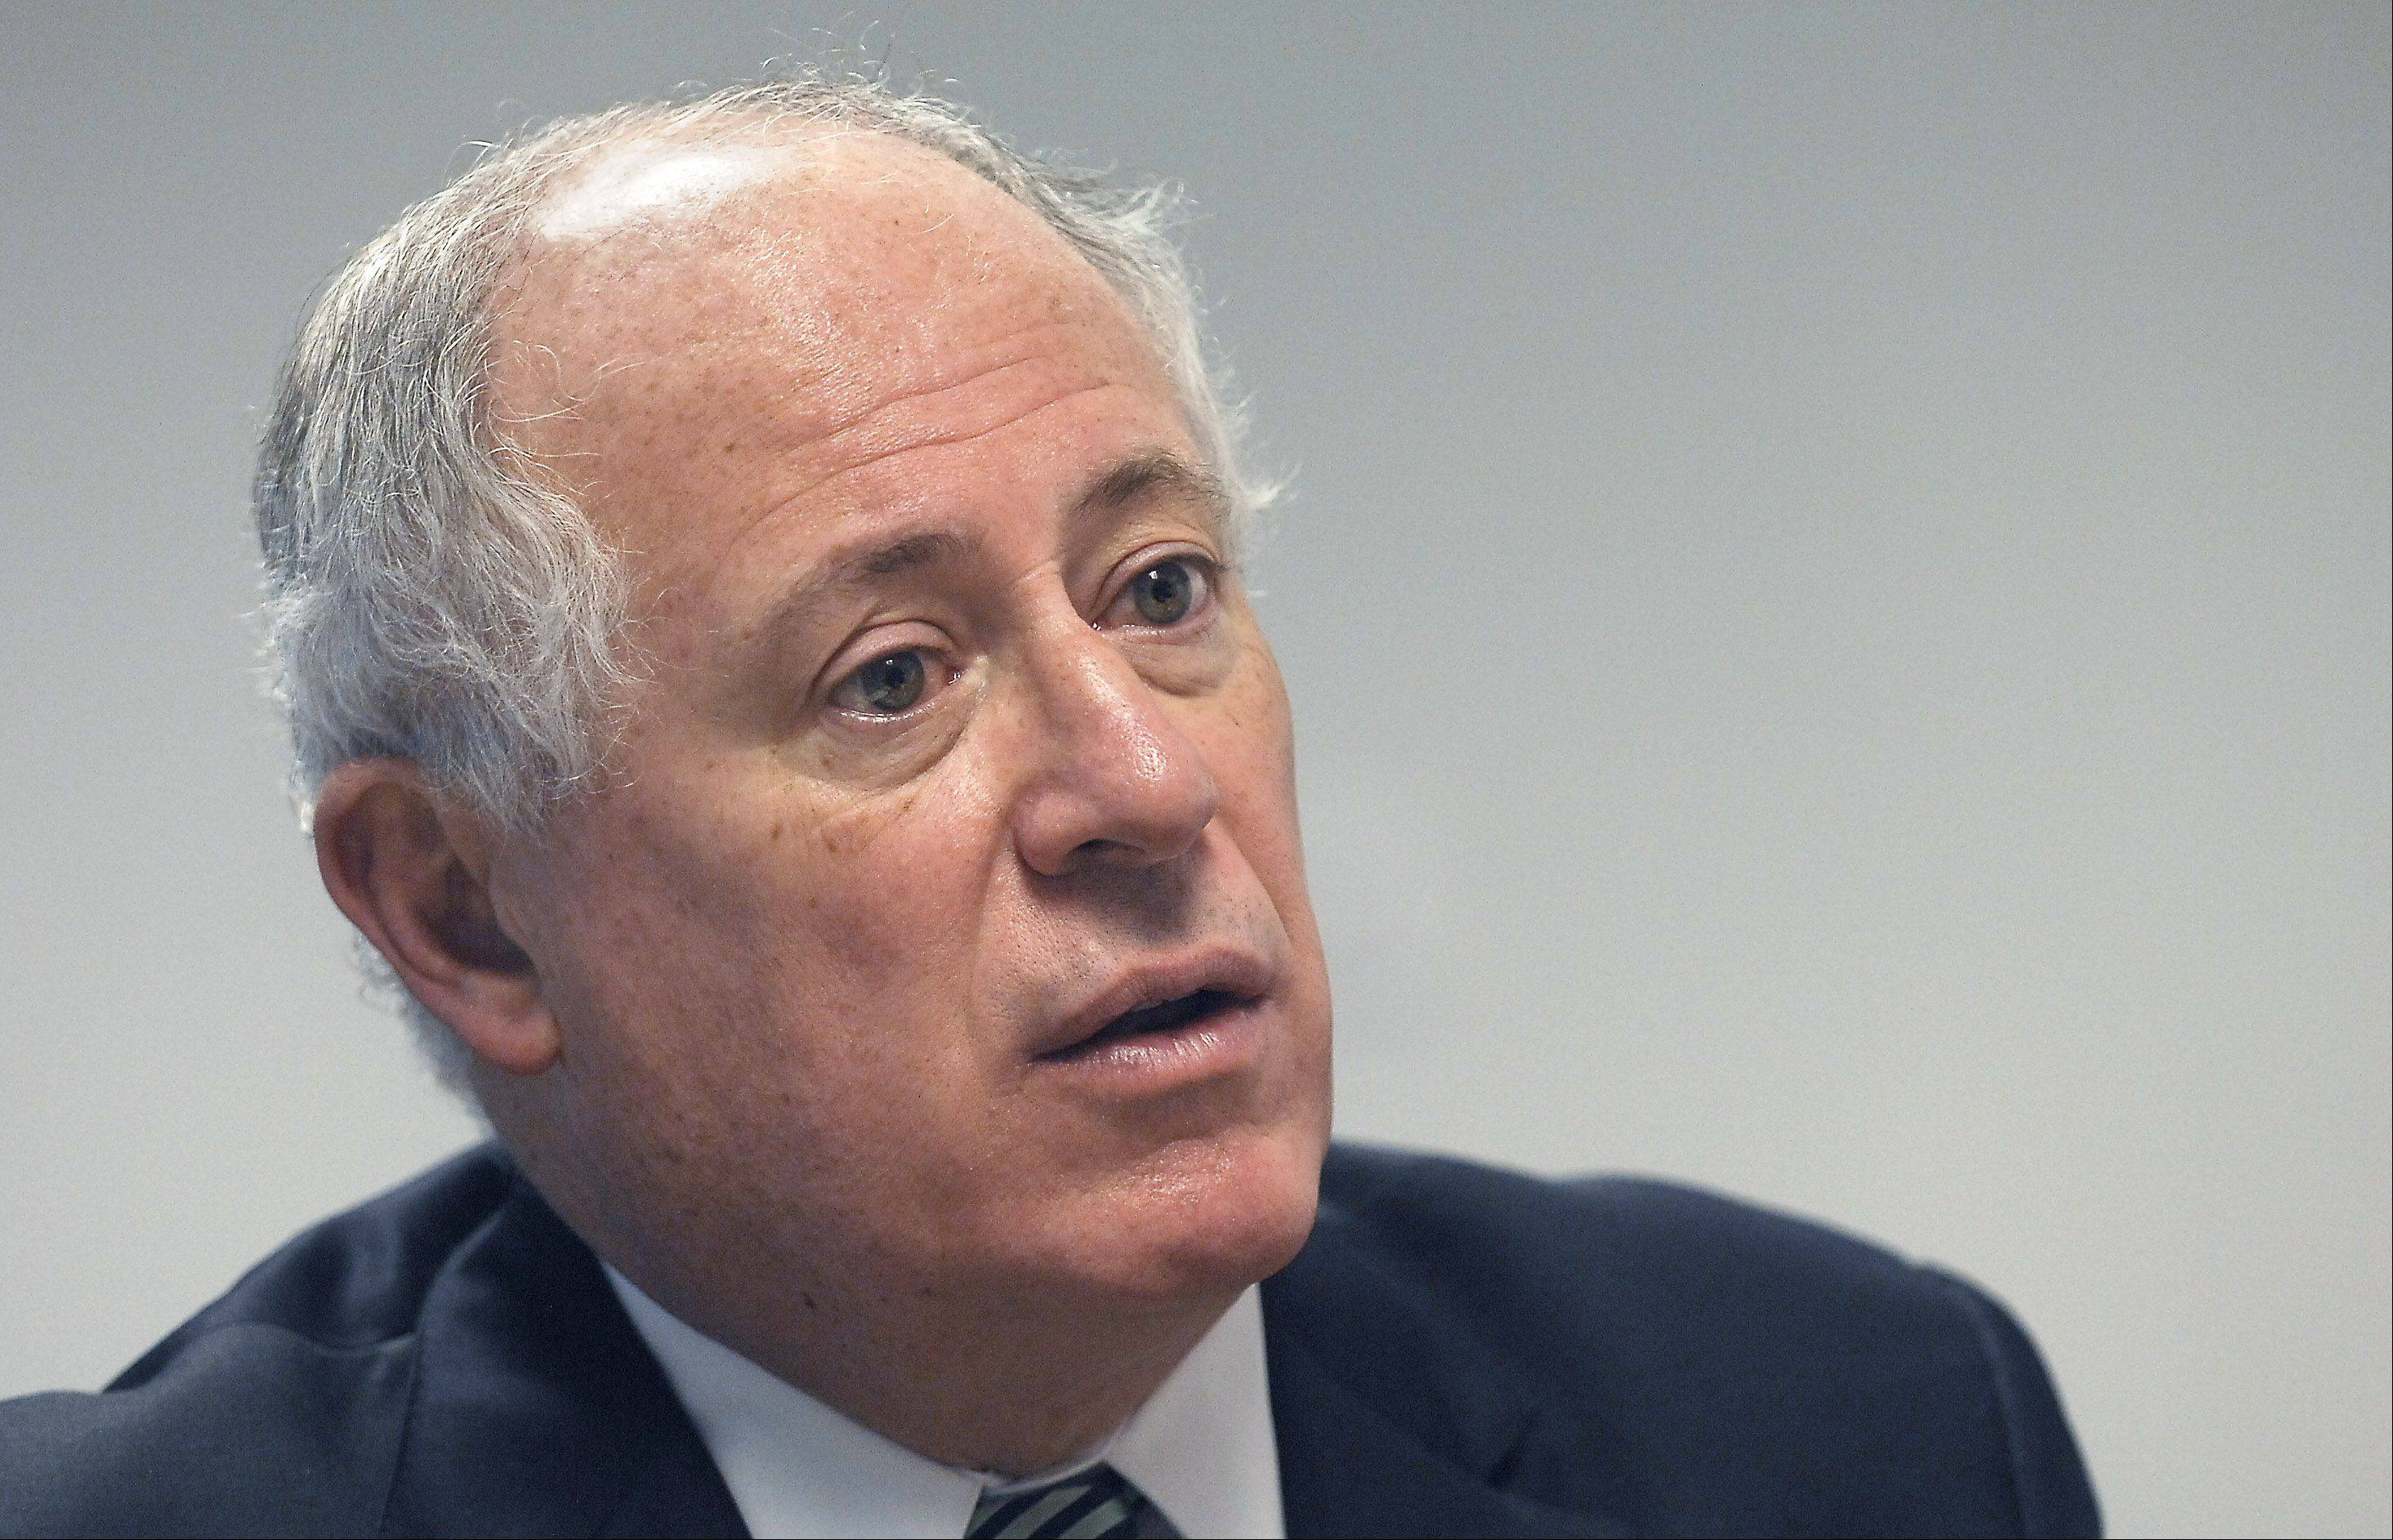 Gov. Pat Quinn attempted to suspend Illinois lawmakers� pay Wednesday, following through on his warning of consequences if they failed to end the state�s nearly $100 billion pension crisis, the worst of any state nationwide.